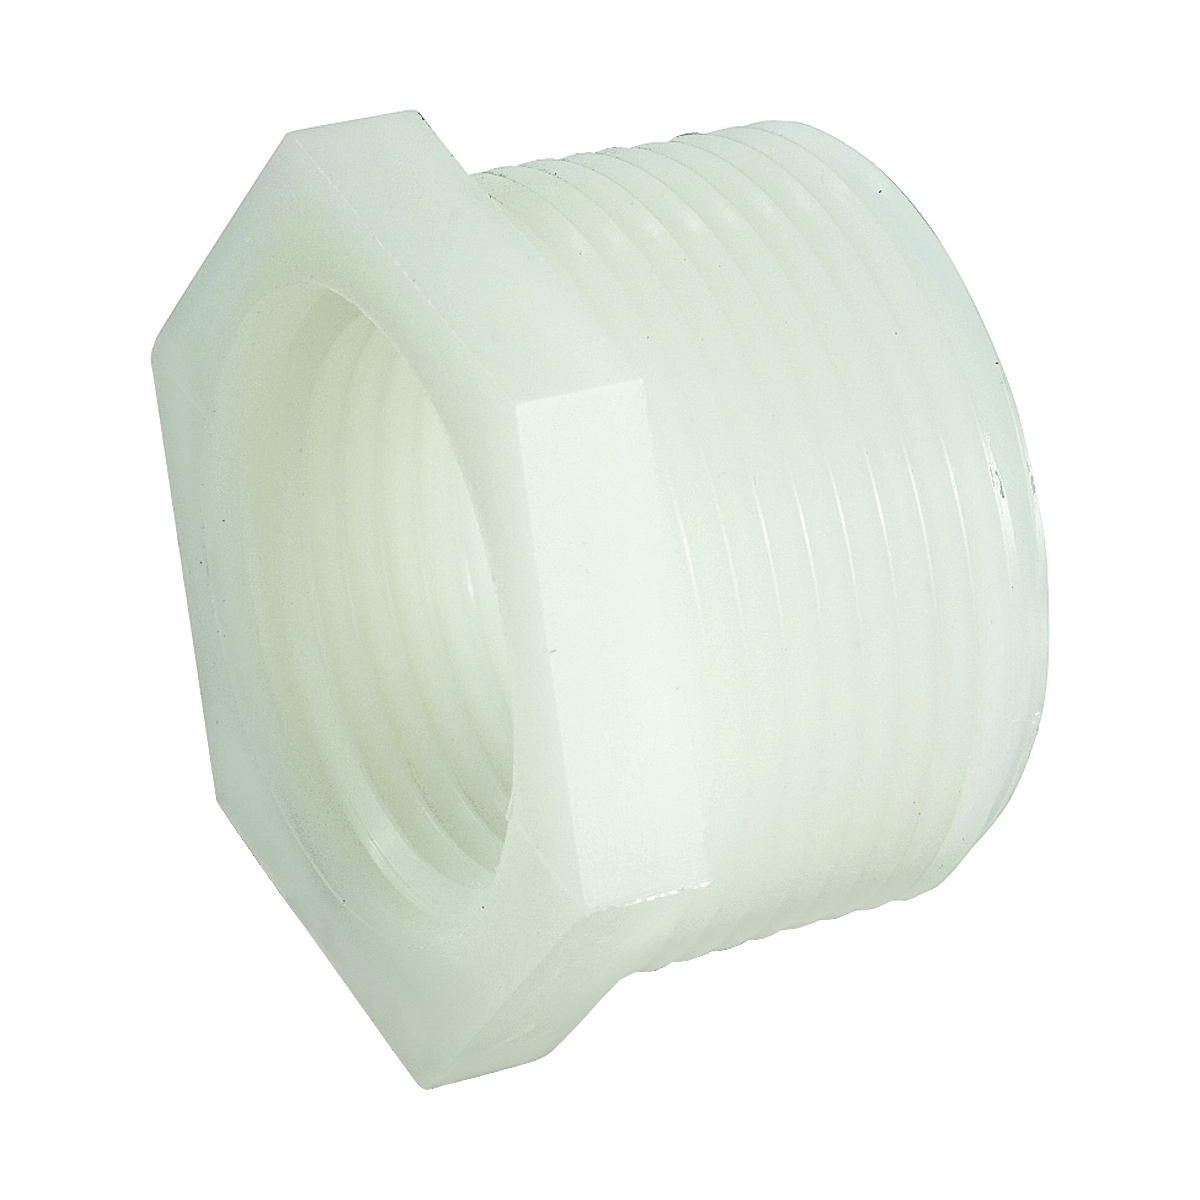 Picture of Anderson Metals 53610-1612 Pipe Reducing Bushing, 1 x 3/4 in, Male x Female Thread, 150 psi Pressure